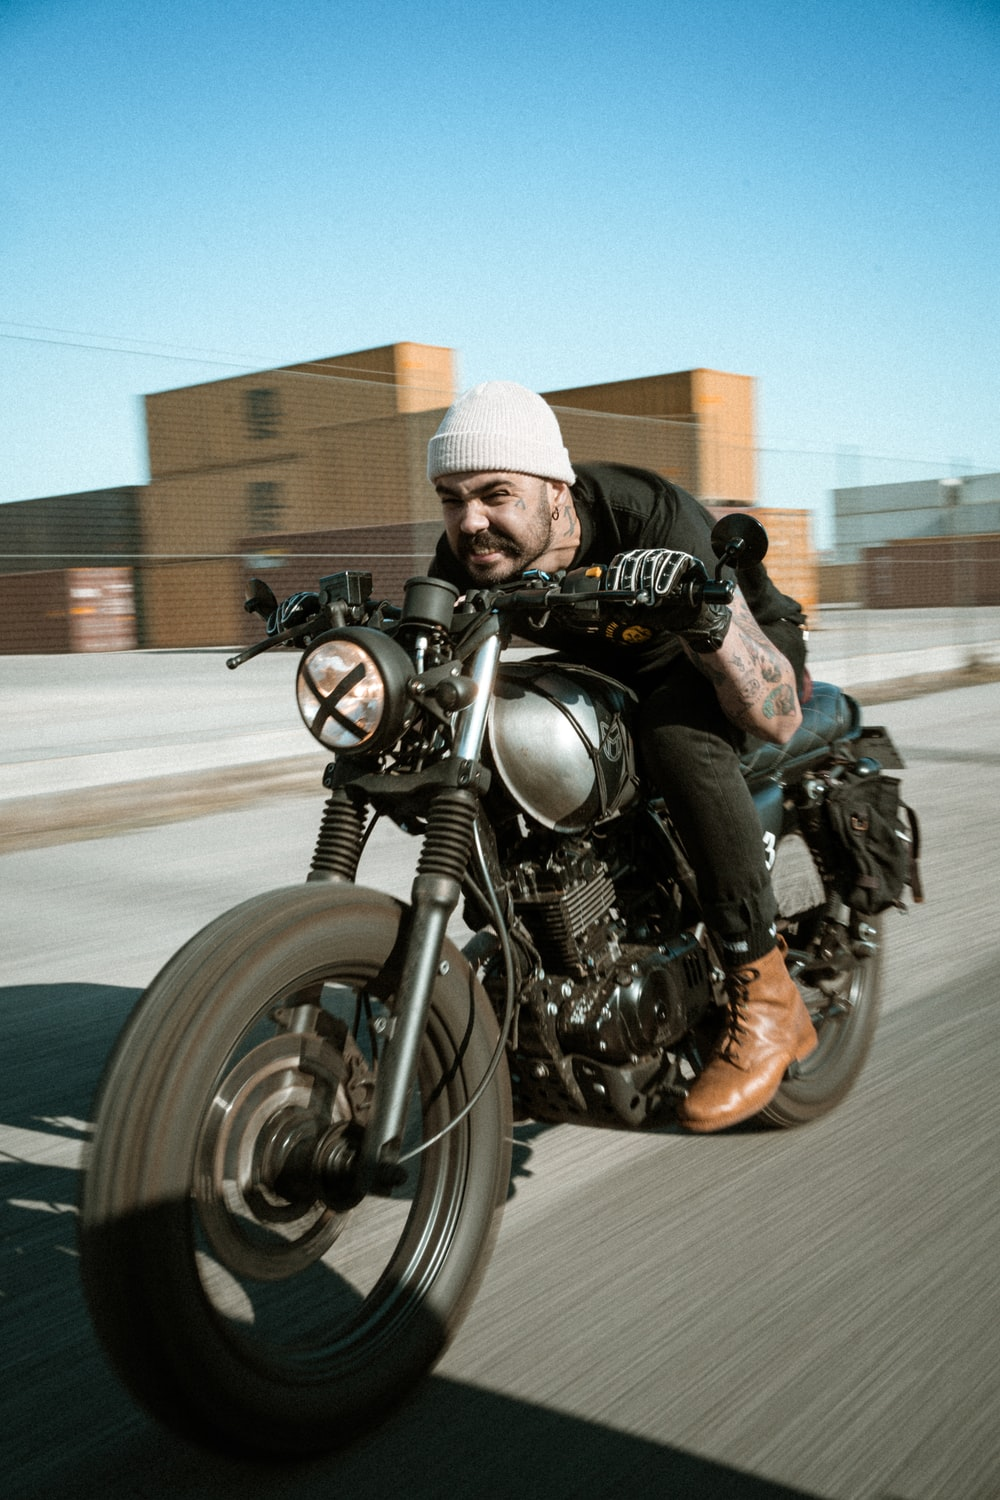 man in black leather jacket and knit cap riding black motorcycle